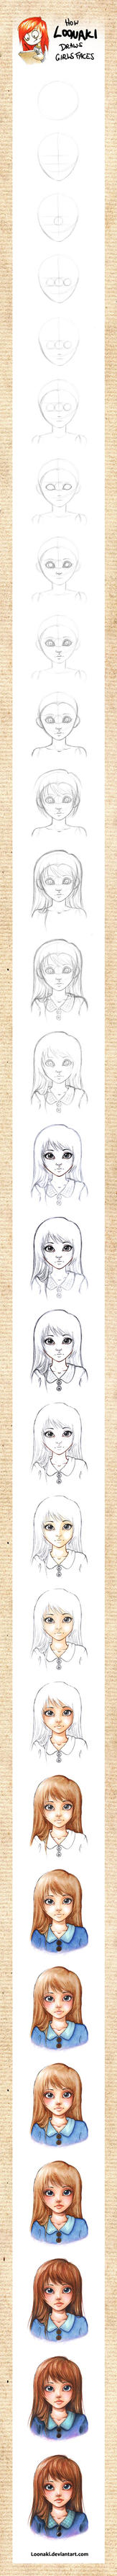 How Loonaki Draws Girls Faces by Loonaki